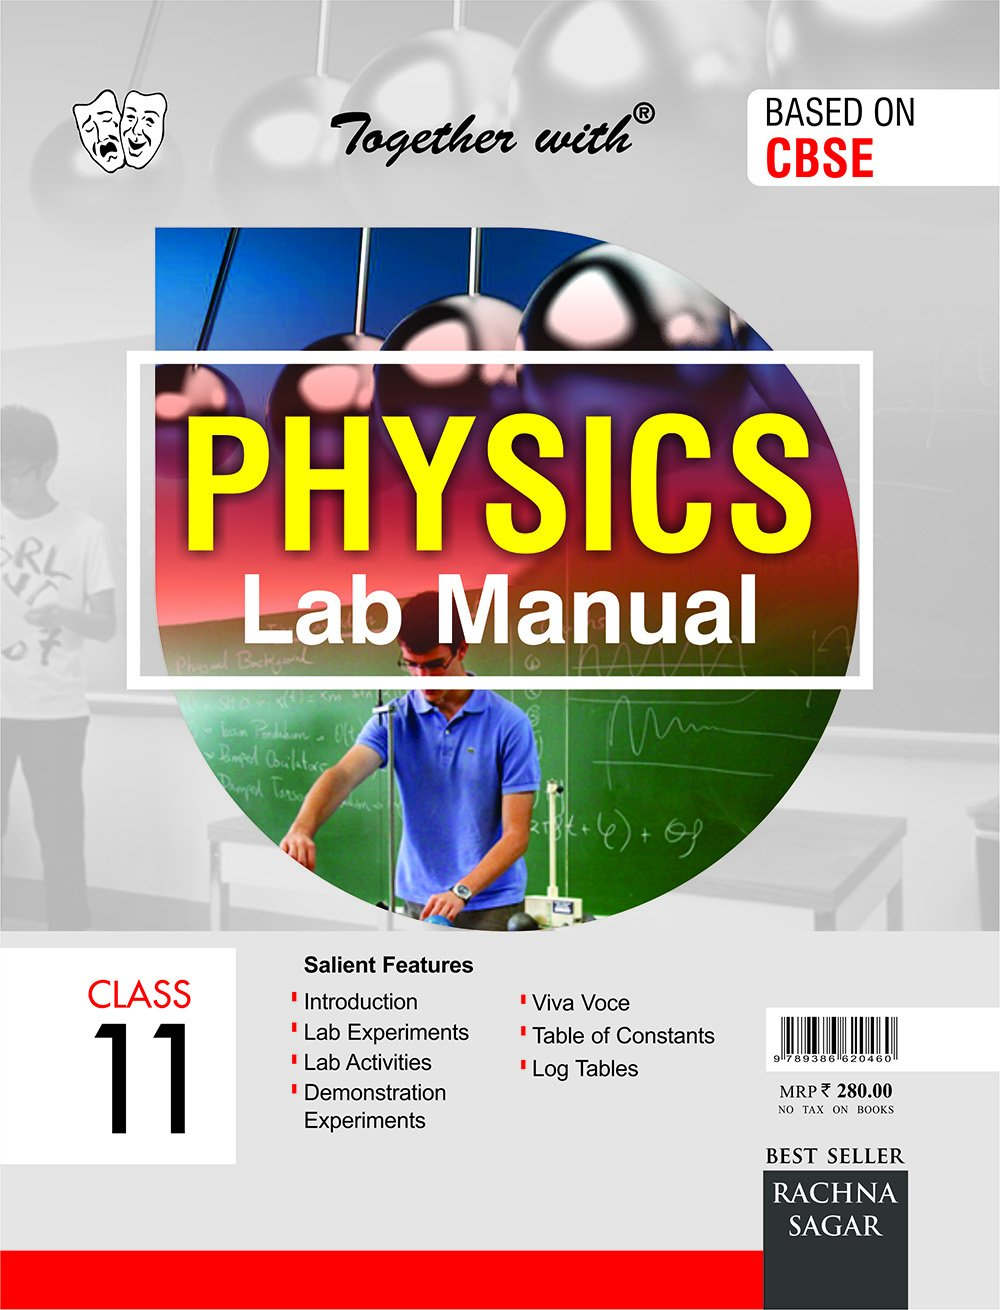 L scheme computer engineering lab manual ebook array together with cbse lab manual physics for class 11 for 2019 exam rh amazon fandeluxe Choice Image